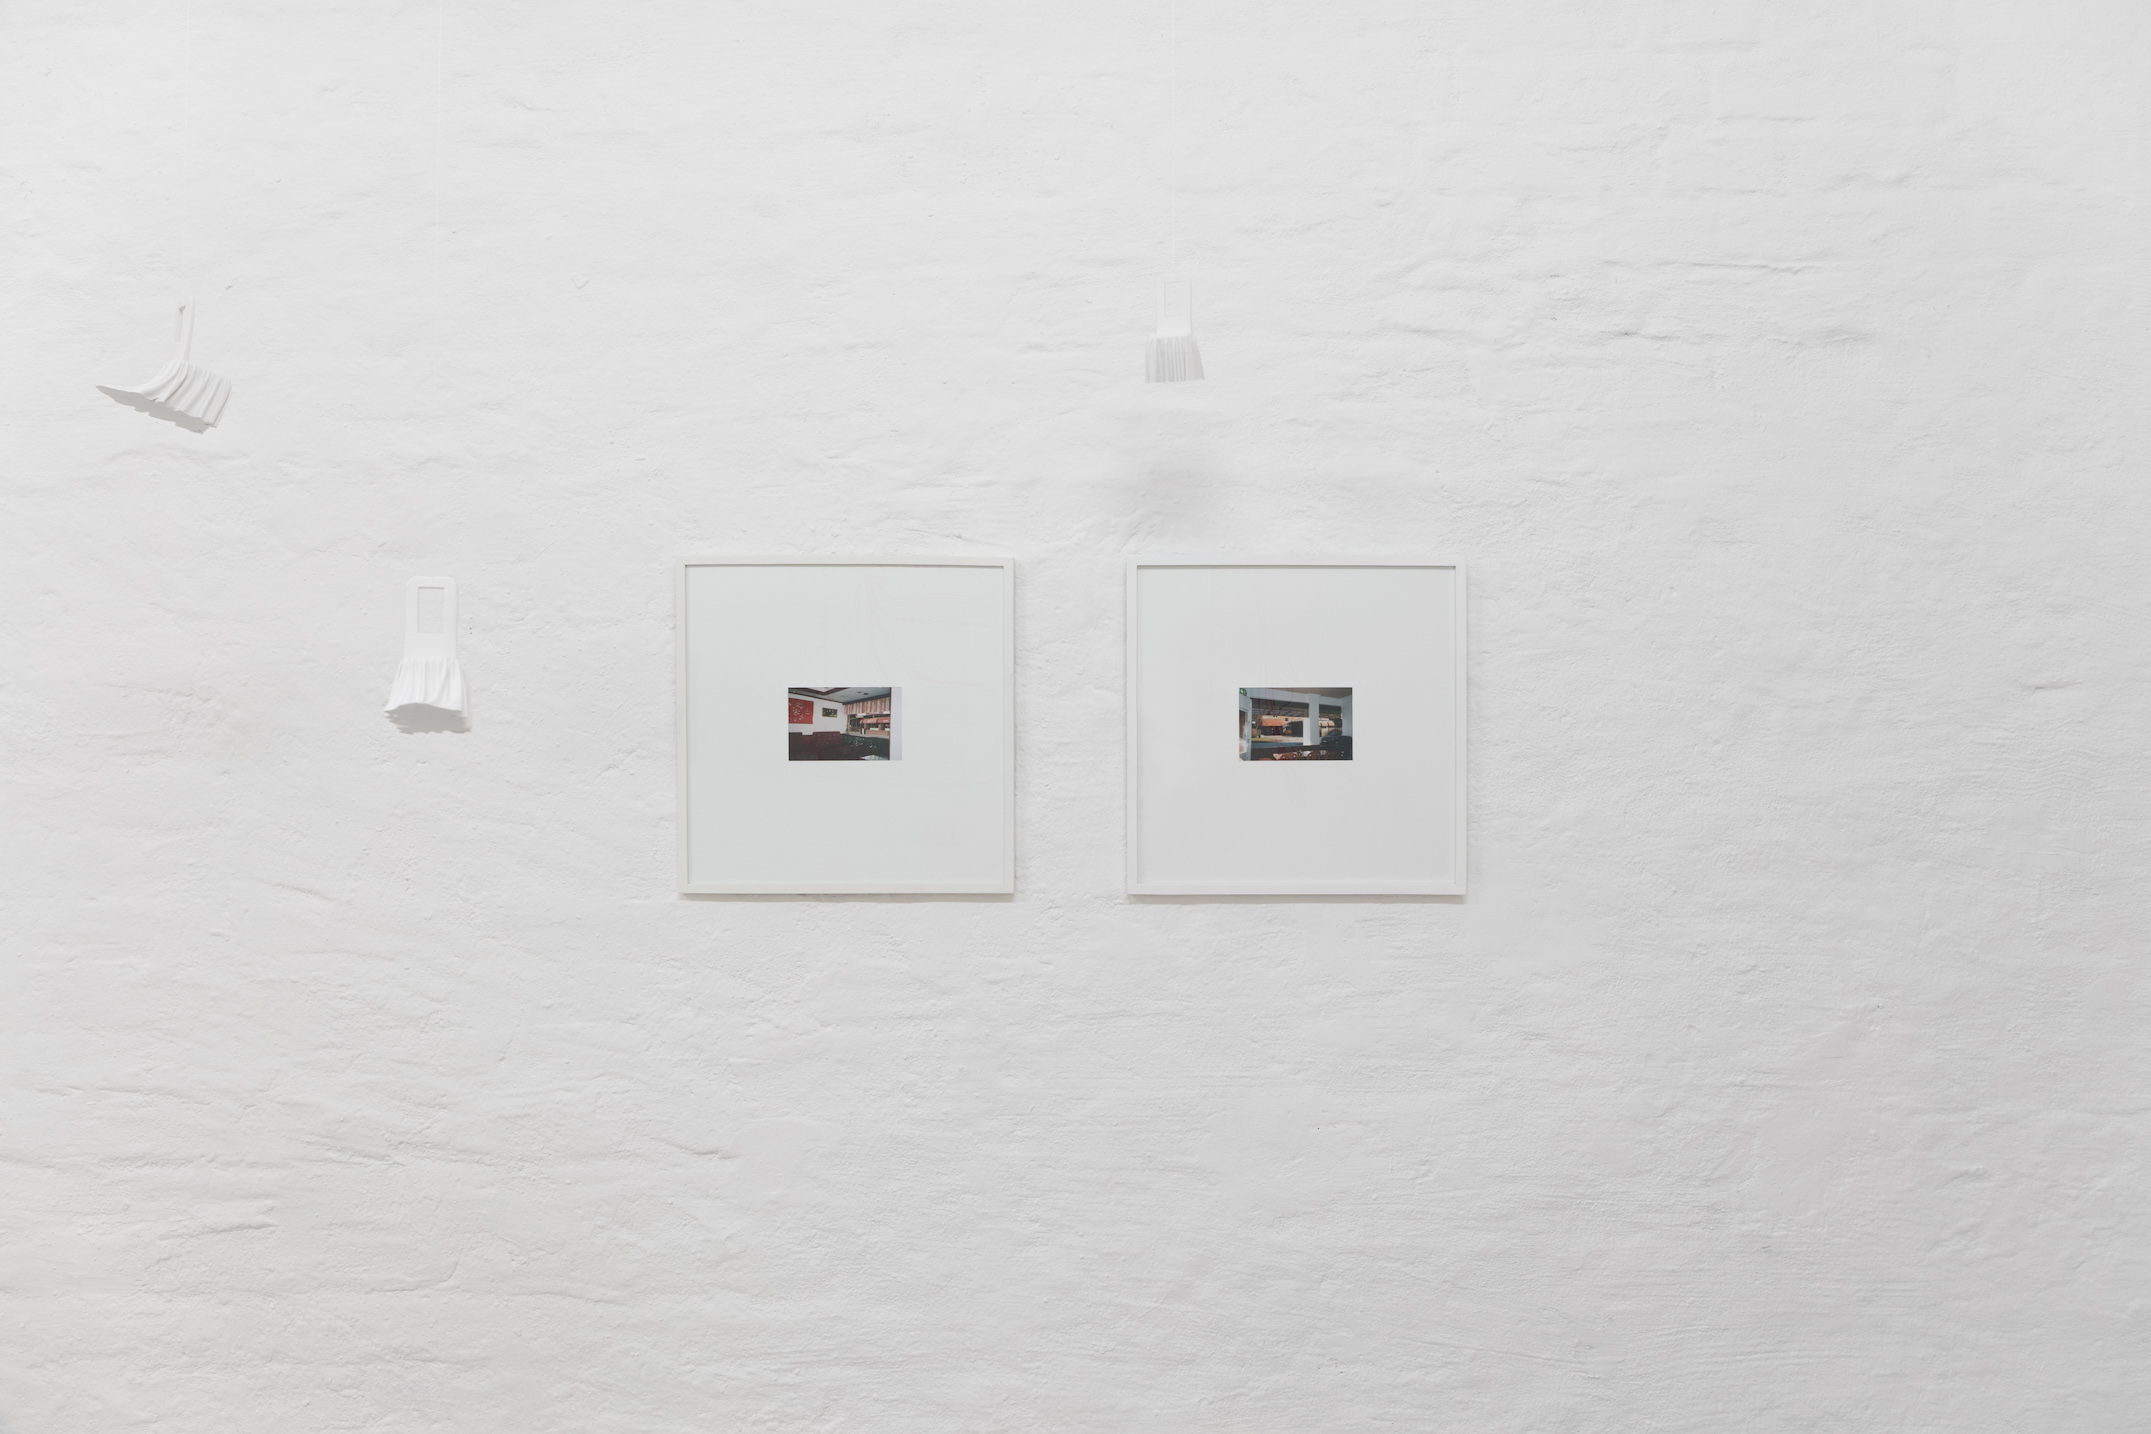 Lap-See Lam, Phantom Banquet Chair, 2019 , Polylactide; Wang with a View of Winner House, 2015, Montage; Winner House with a View of Ho Wah, 2015, Montage